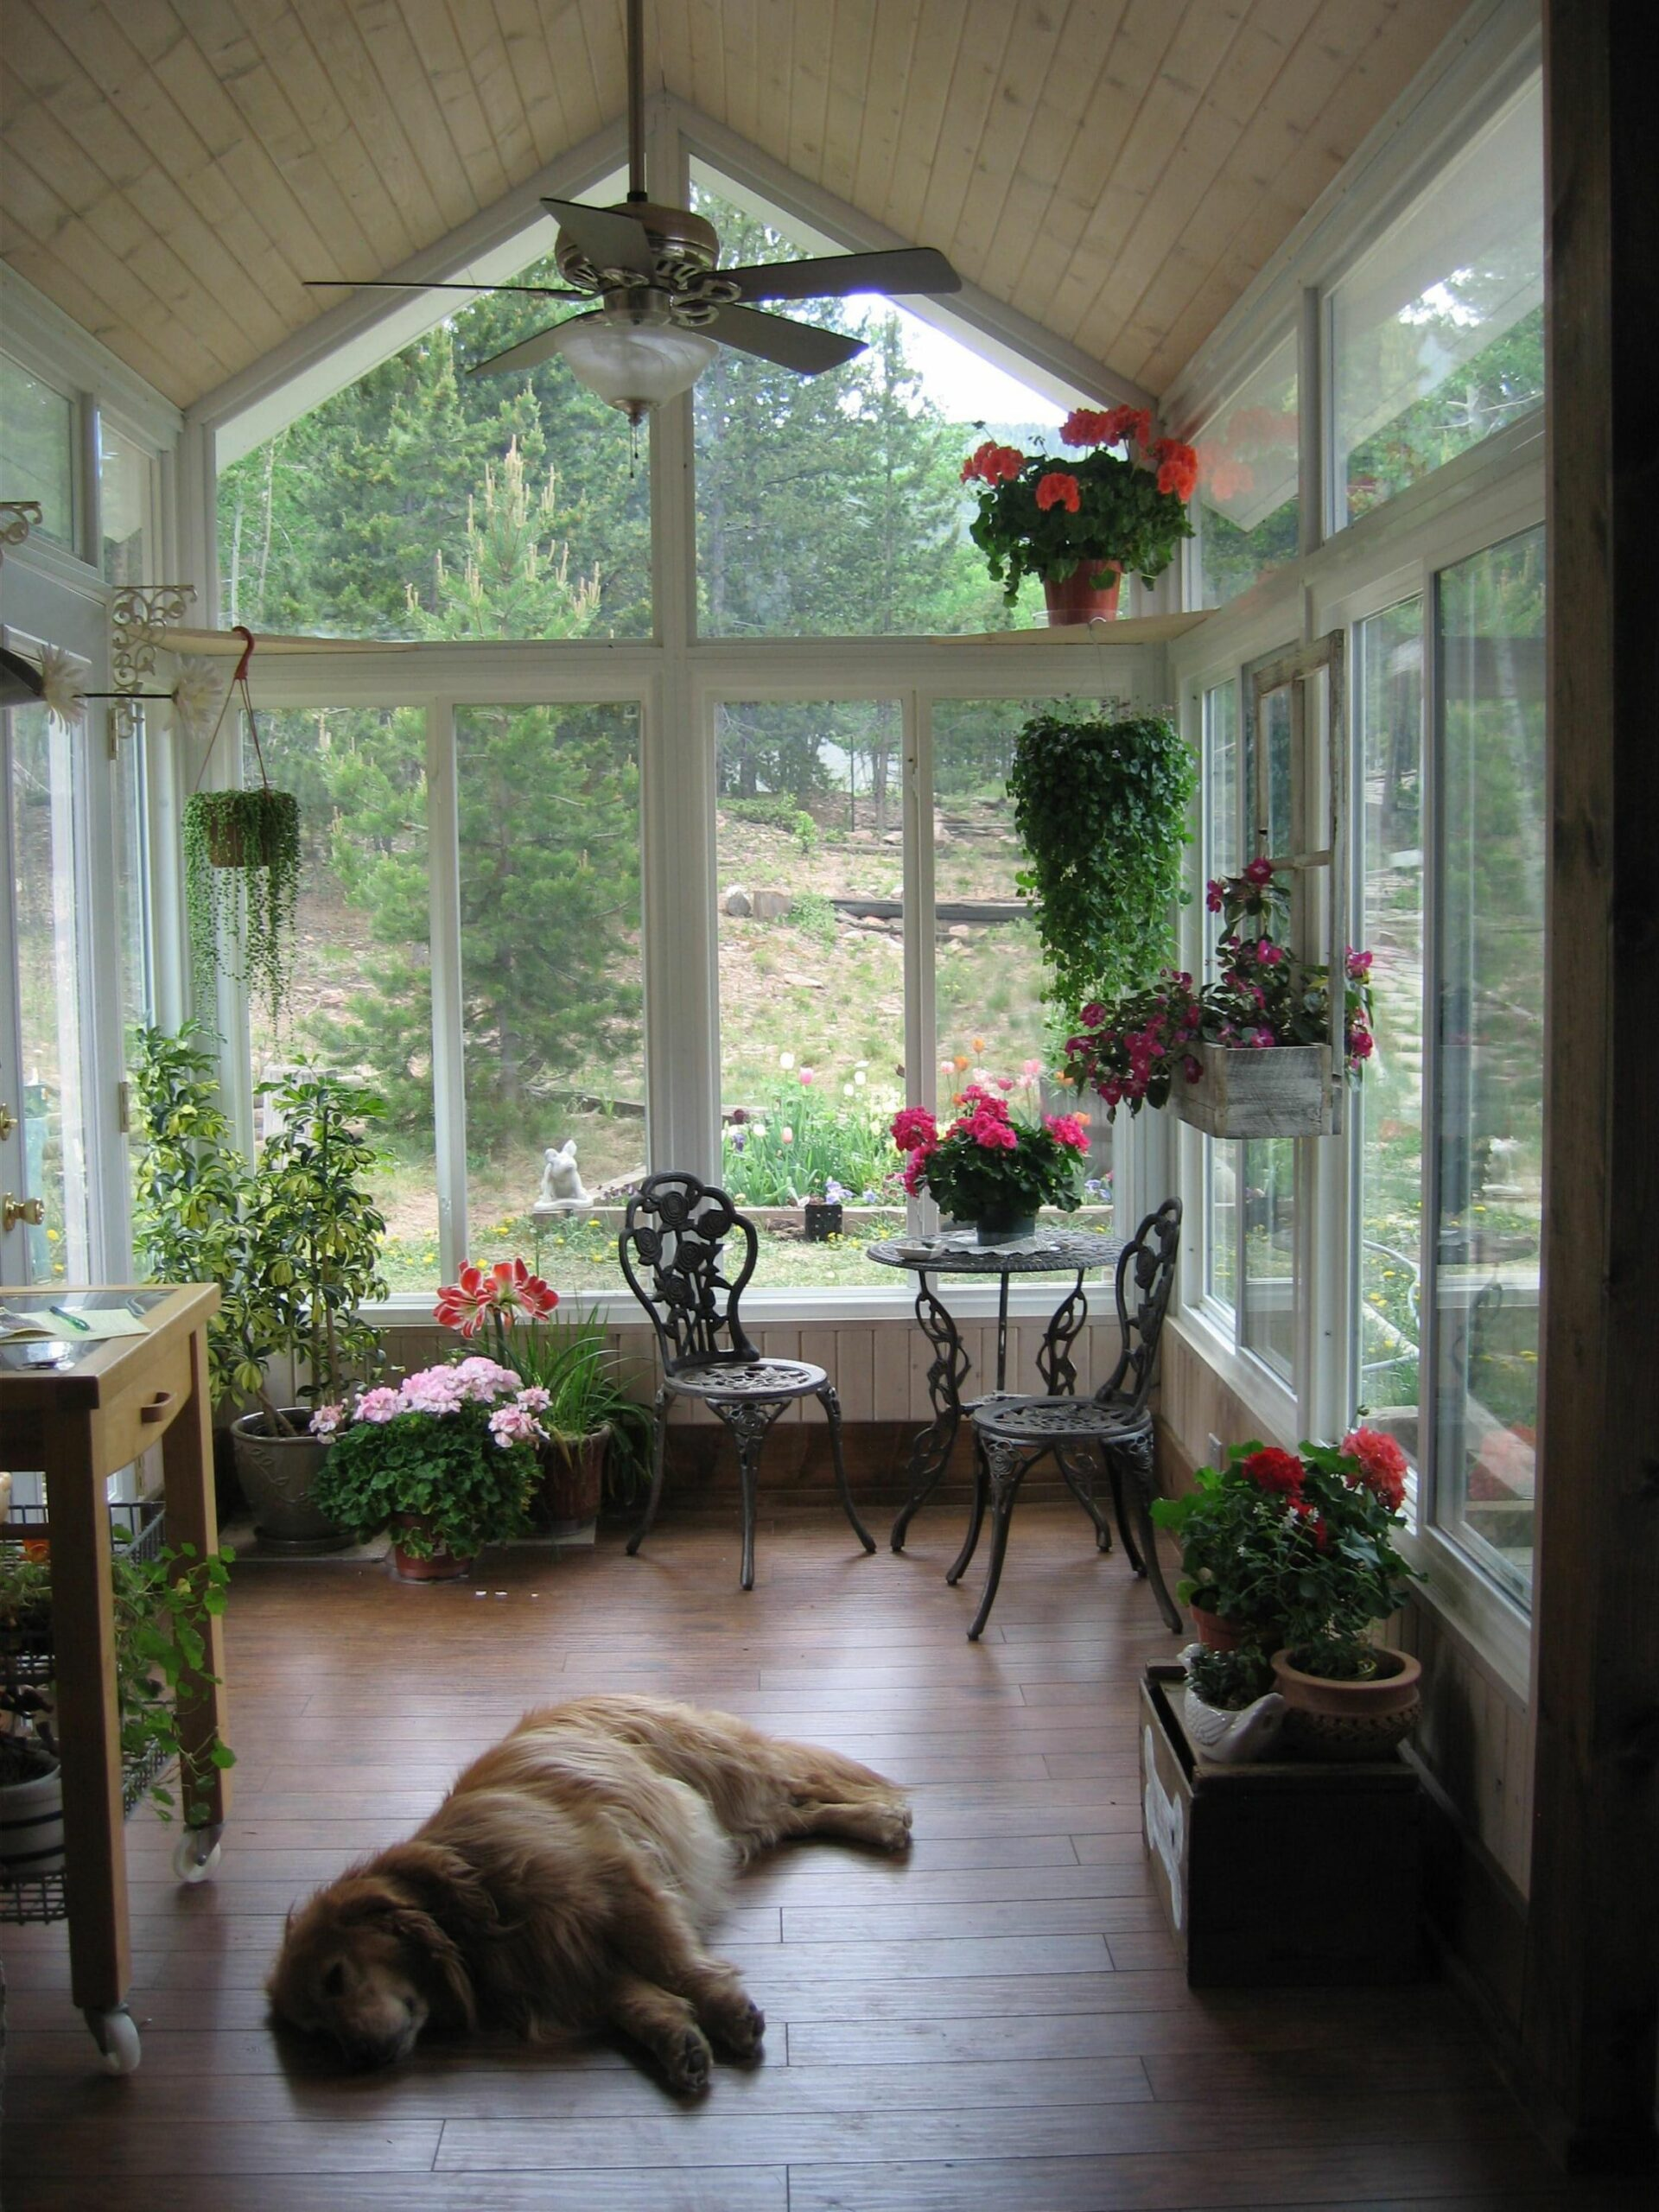 New Sunroom Plants Ideas That Will Cheer Up Your Home (Stunning ..